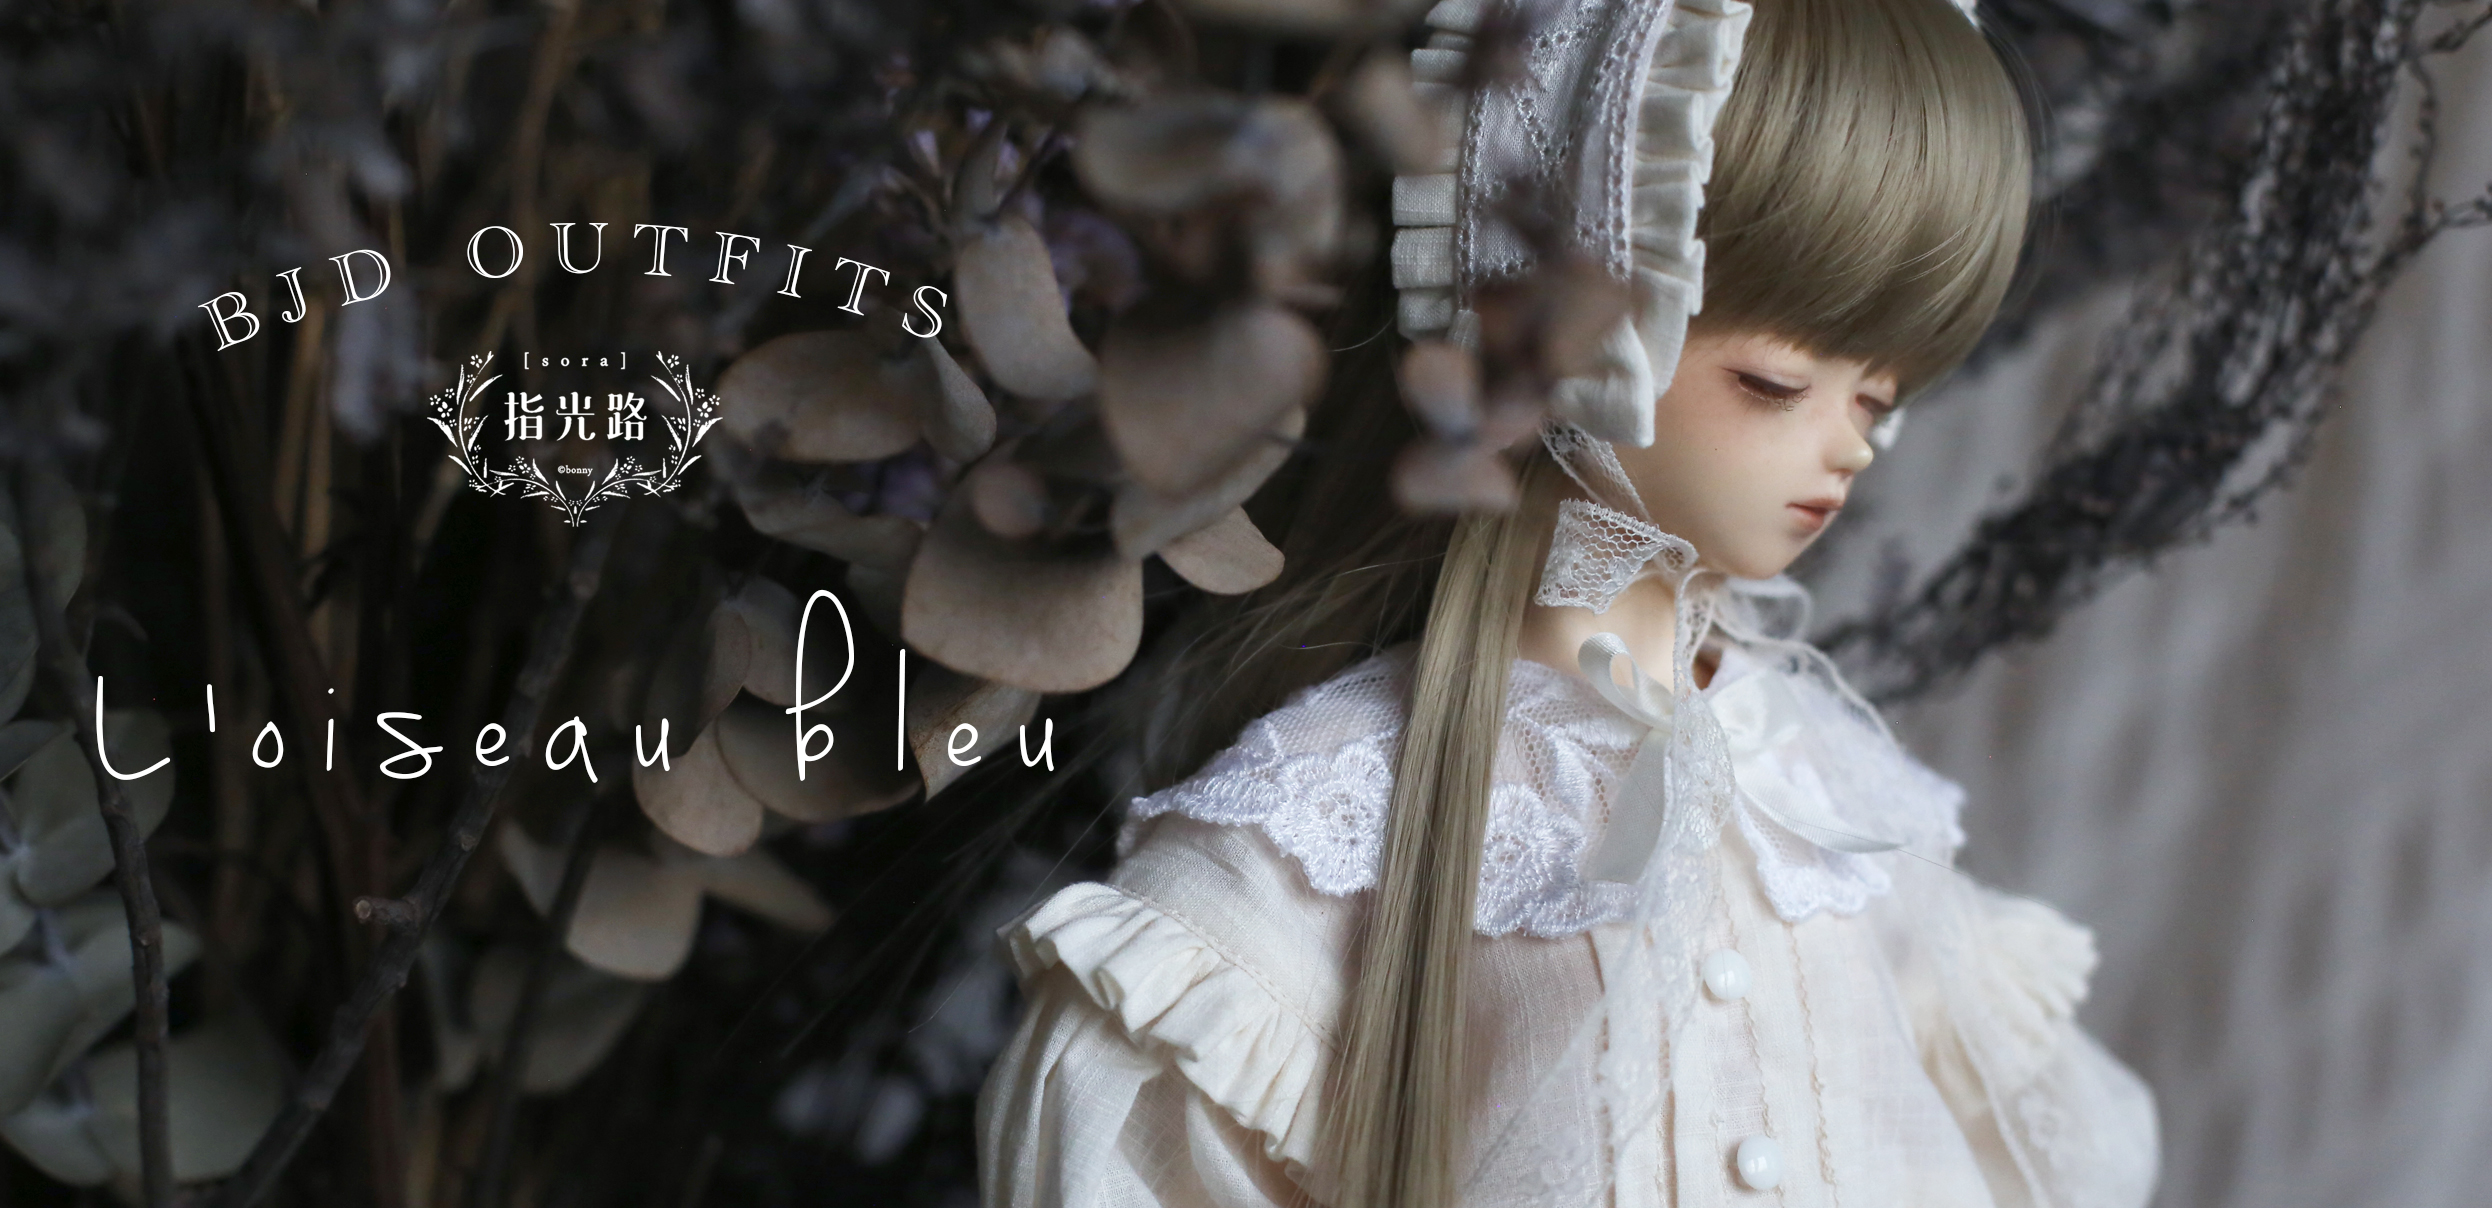 No73.L'oiseau bleu - Girl sets